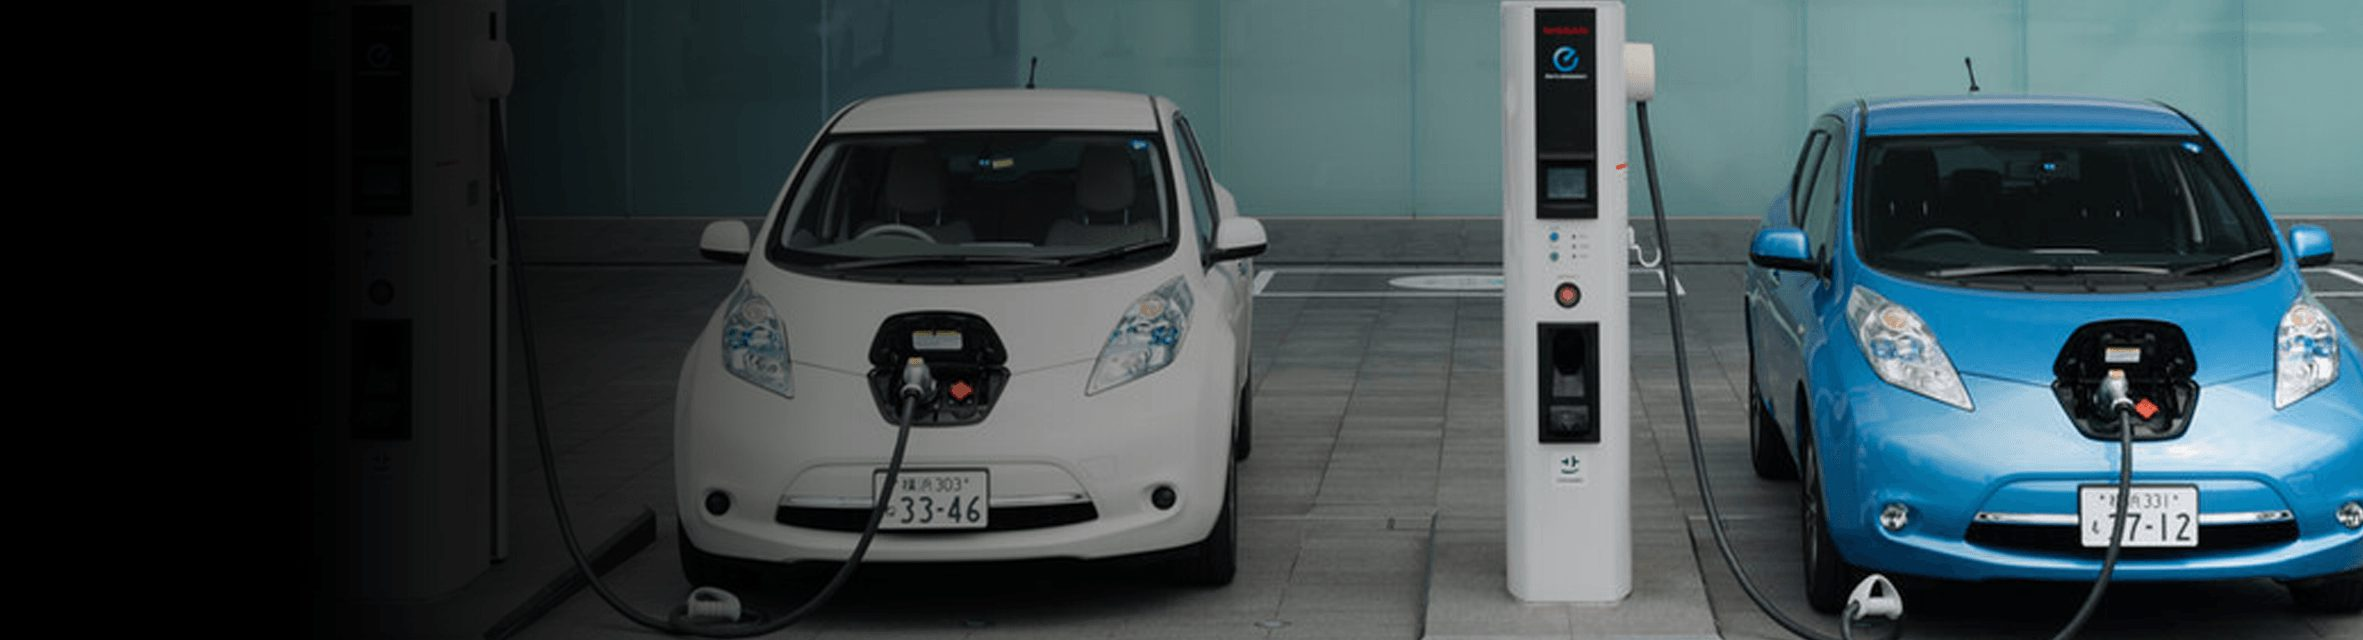 Electric Vehicle Supply Equipment (EVSE)